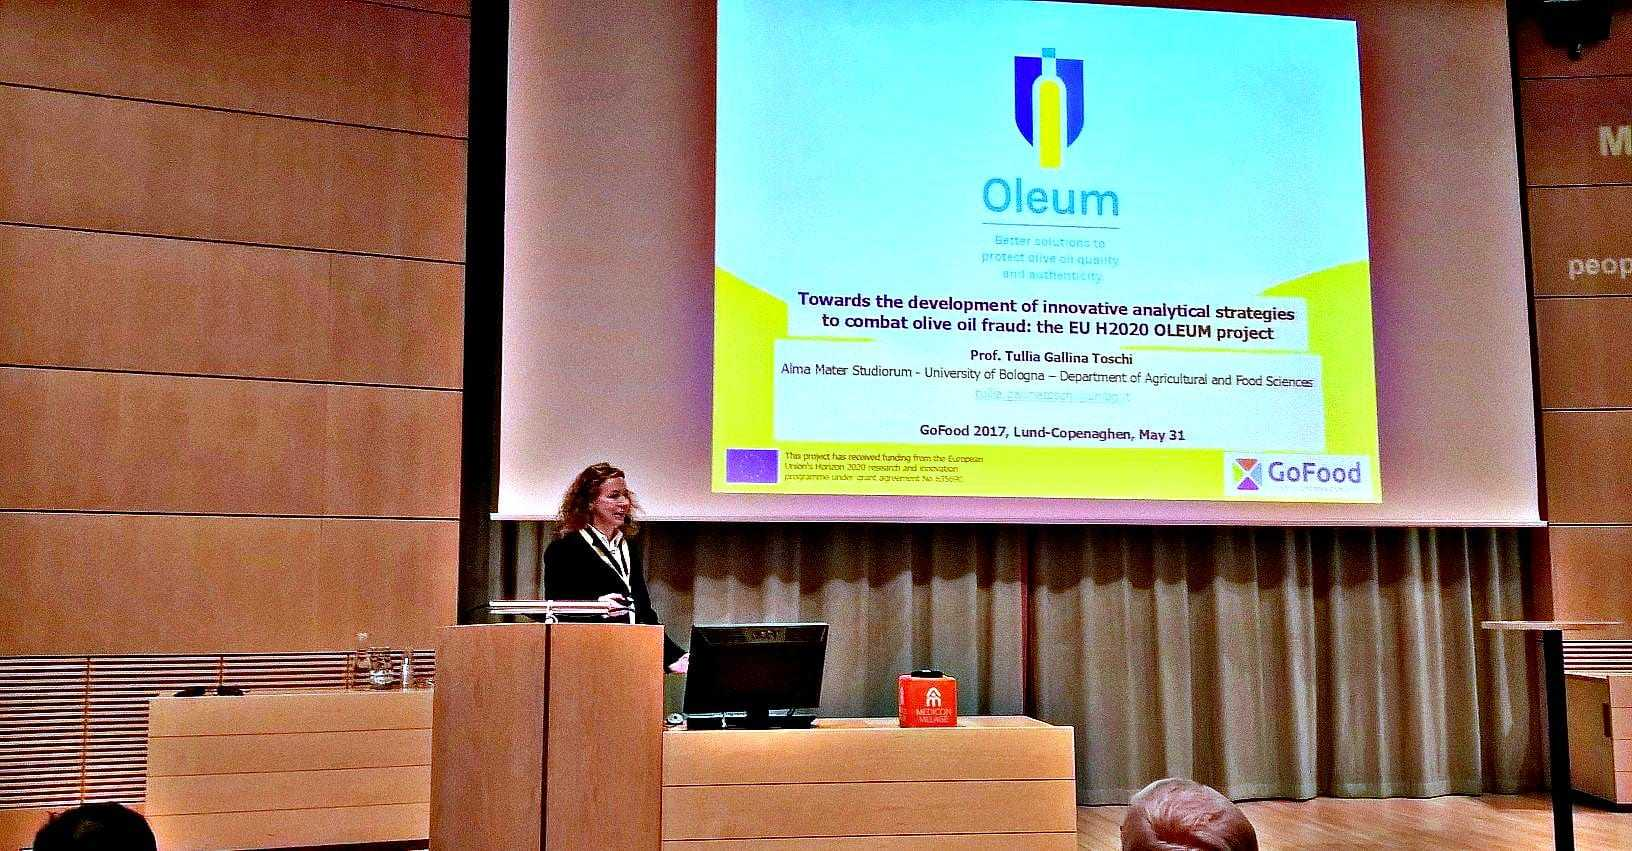 oleum-project-seeks-better-solutions-to-protect-olive-oil-authenticity